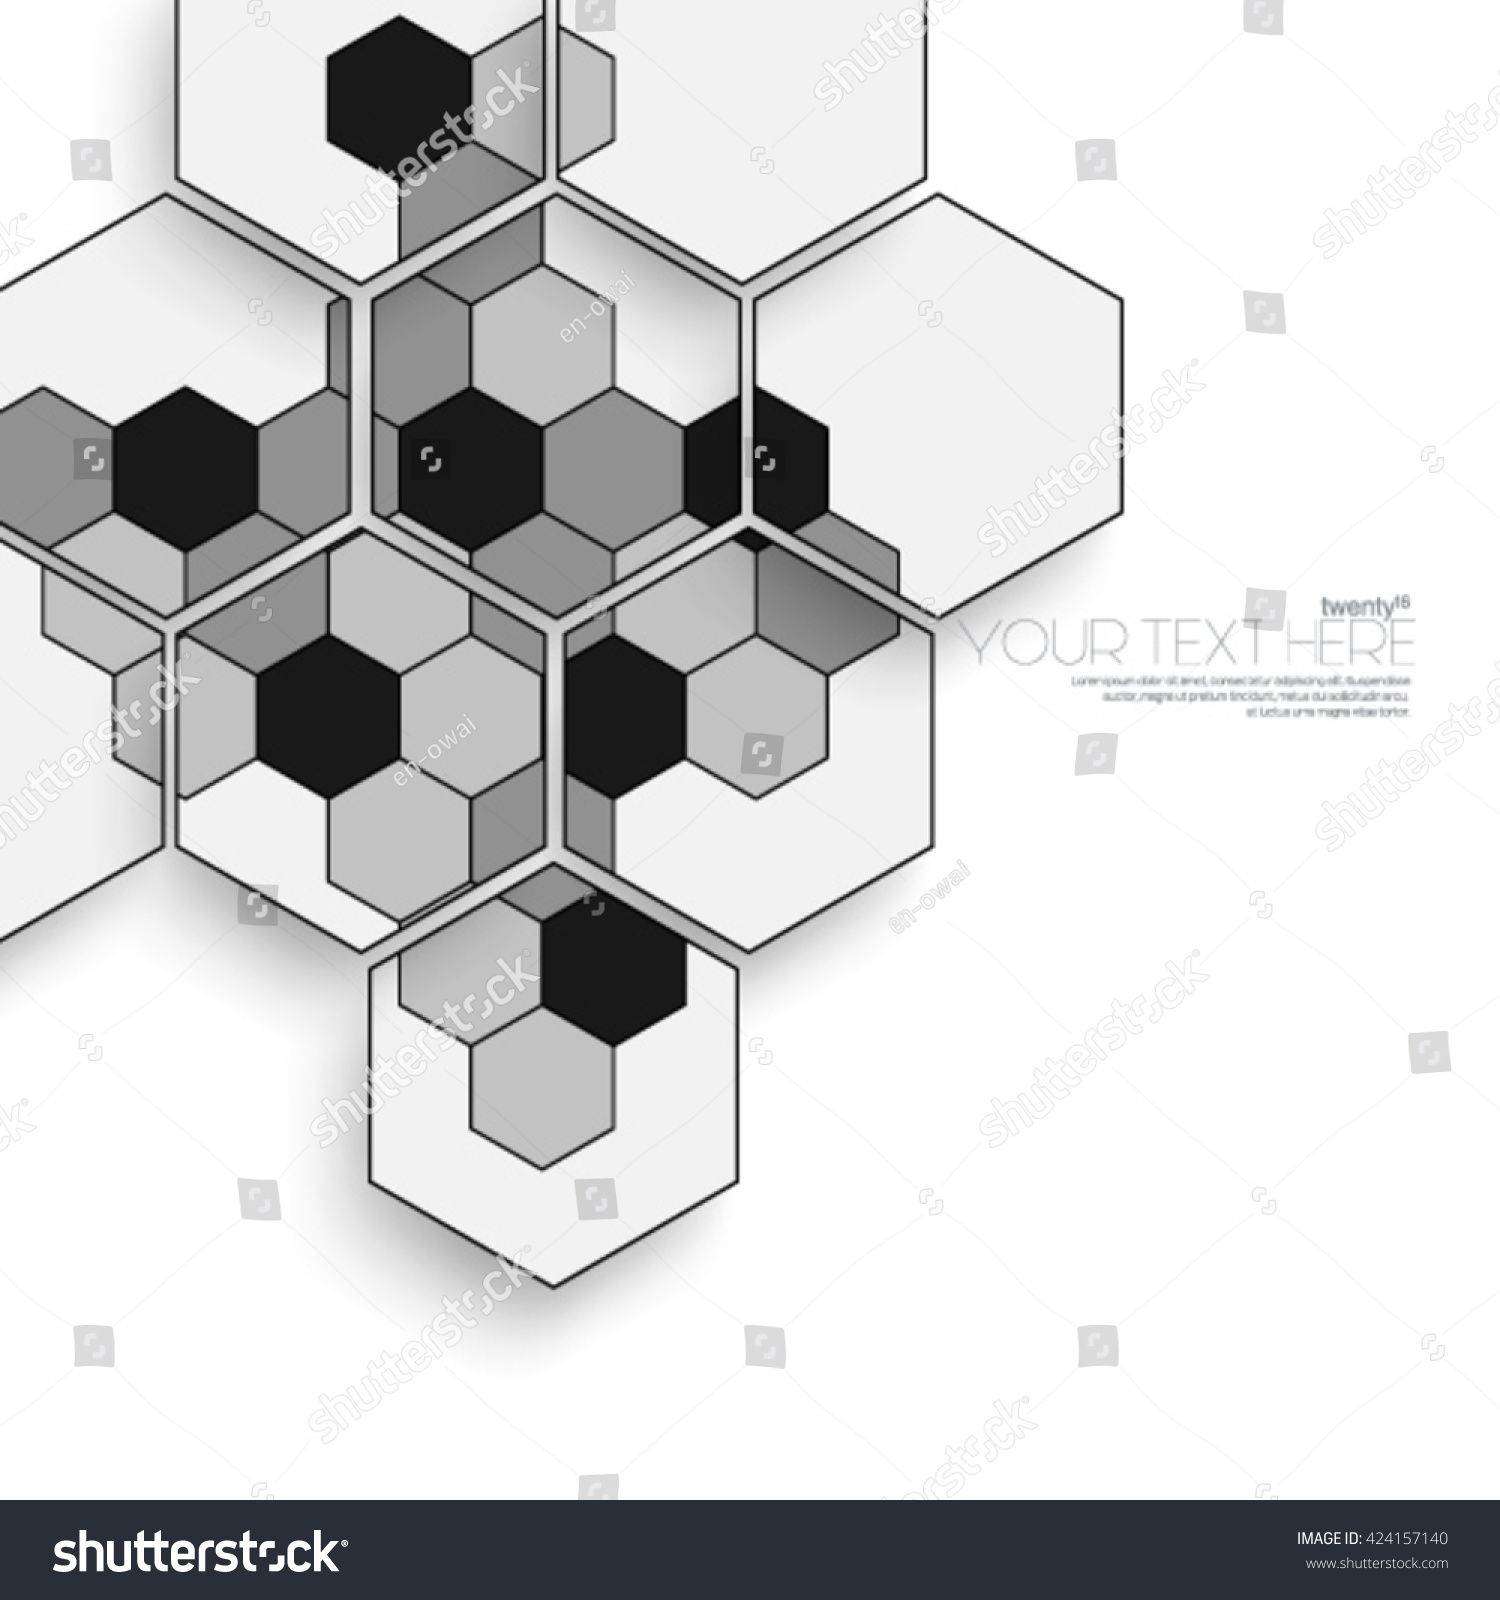 Geometric Hexagonal Layout Design Cover Background Stock Vector ...